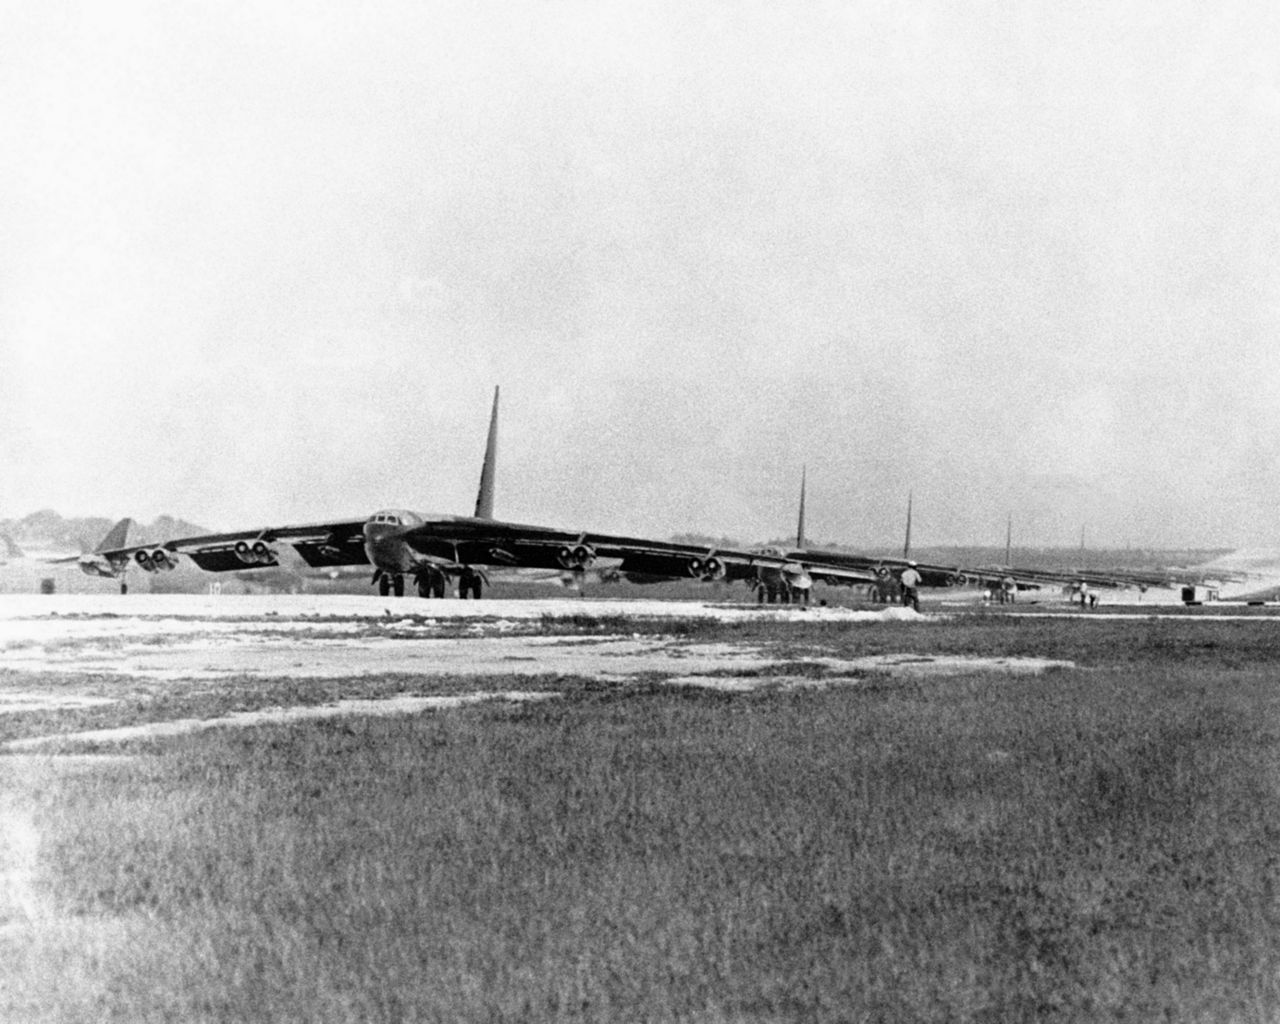 b 1280px-B-52Ds_before_takeoff_Andersen_AFB_Dec_1972